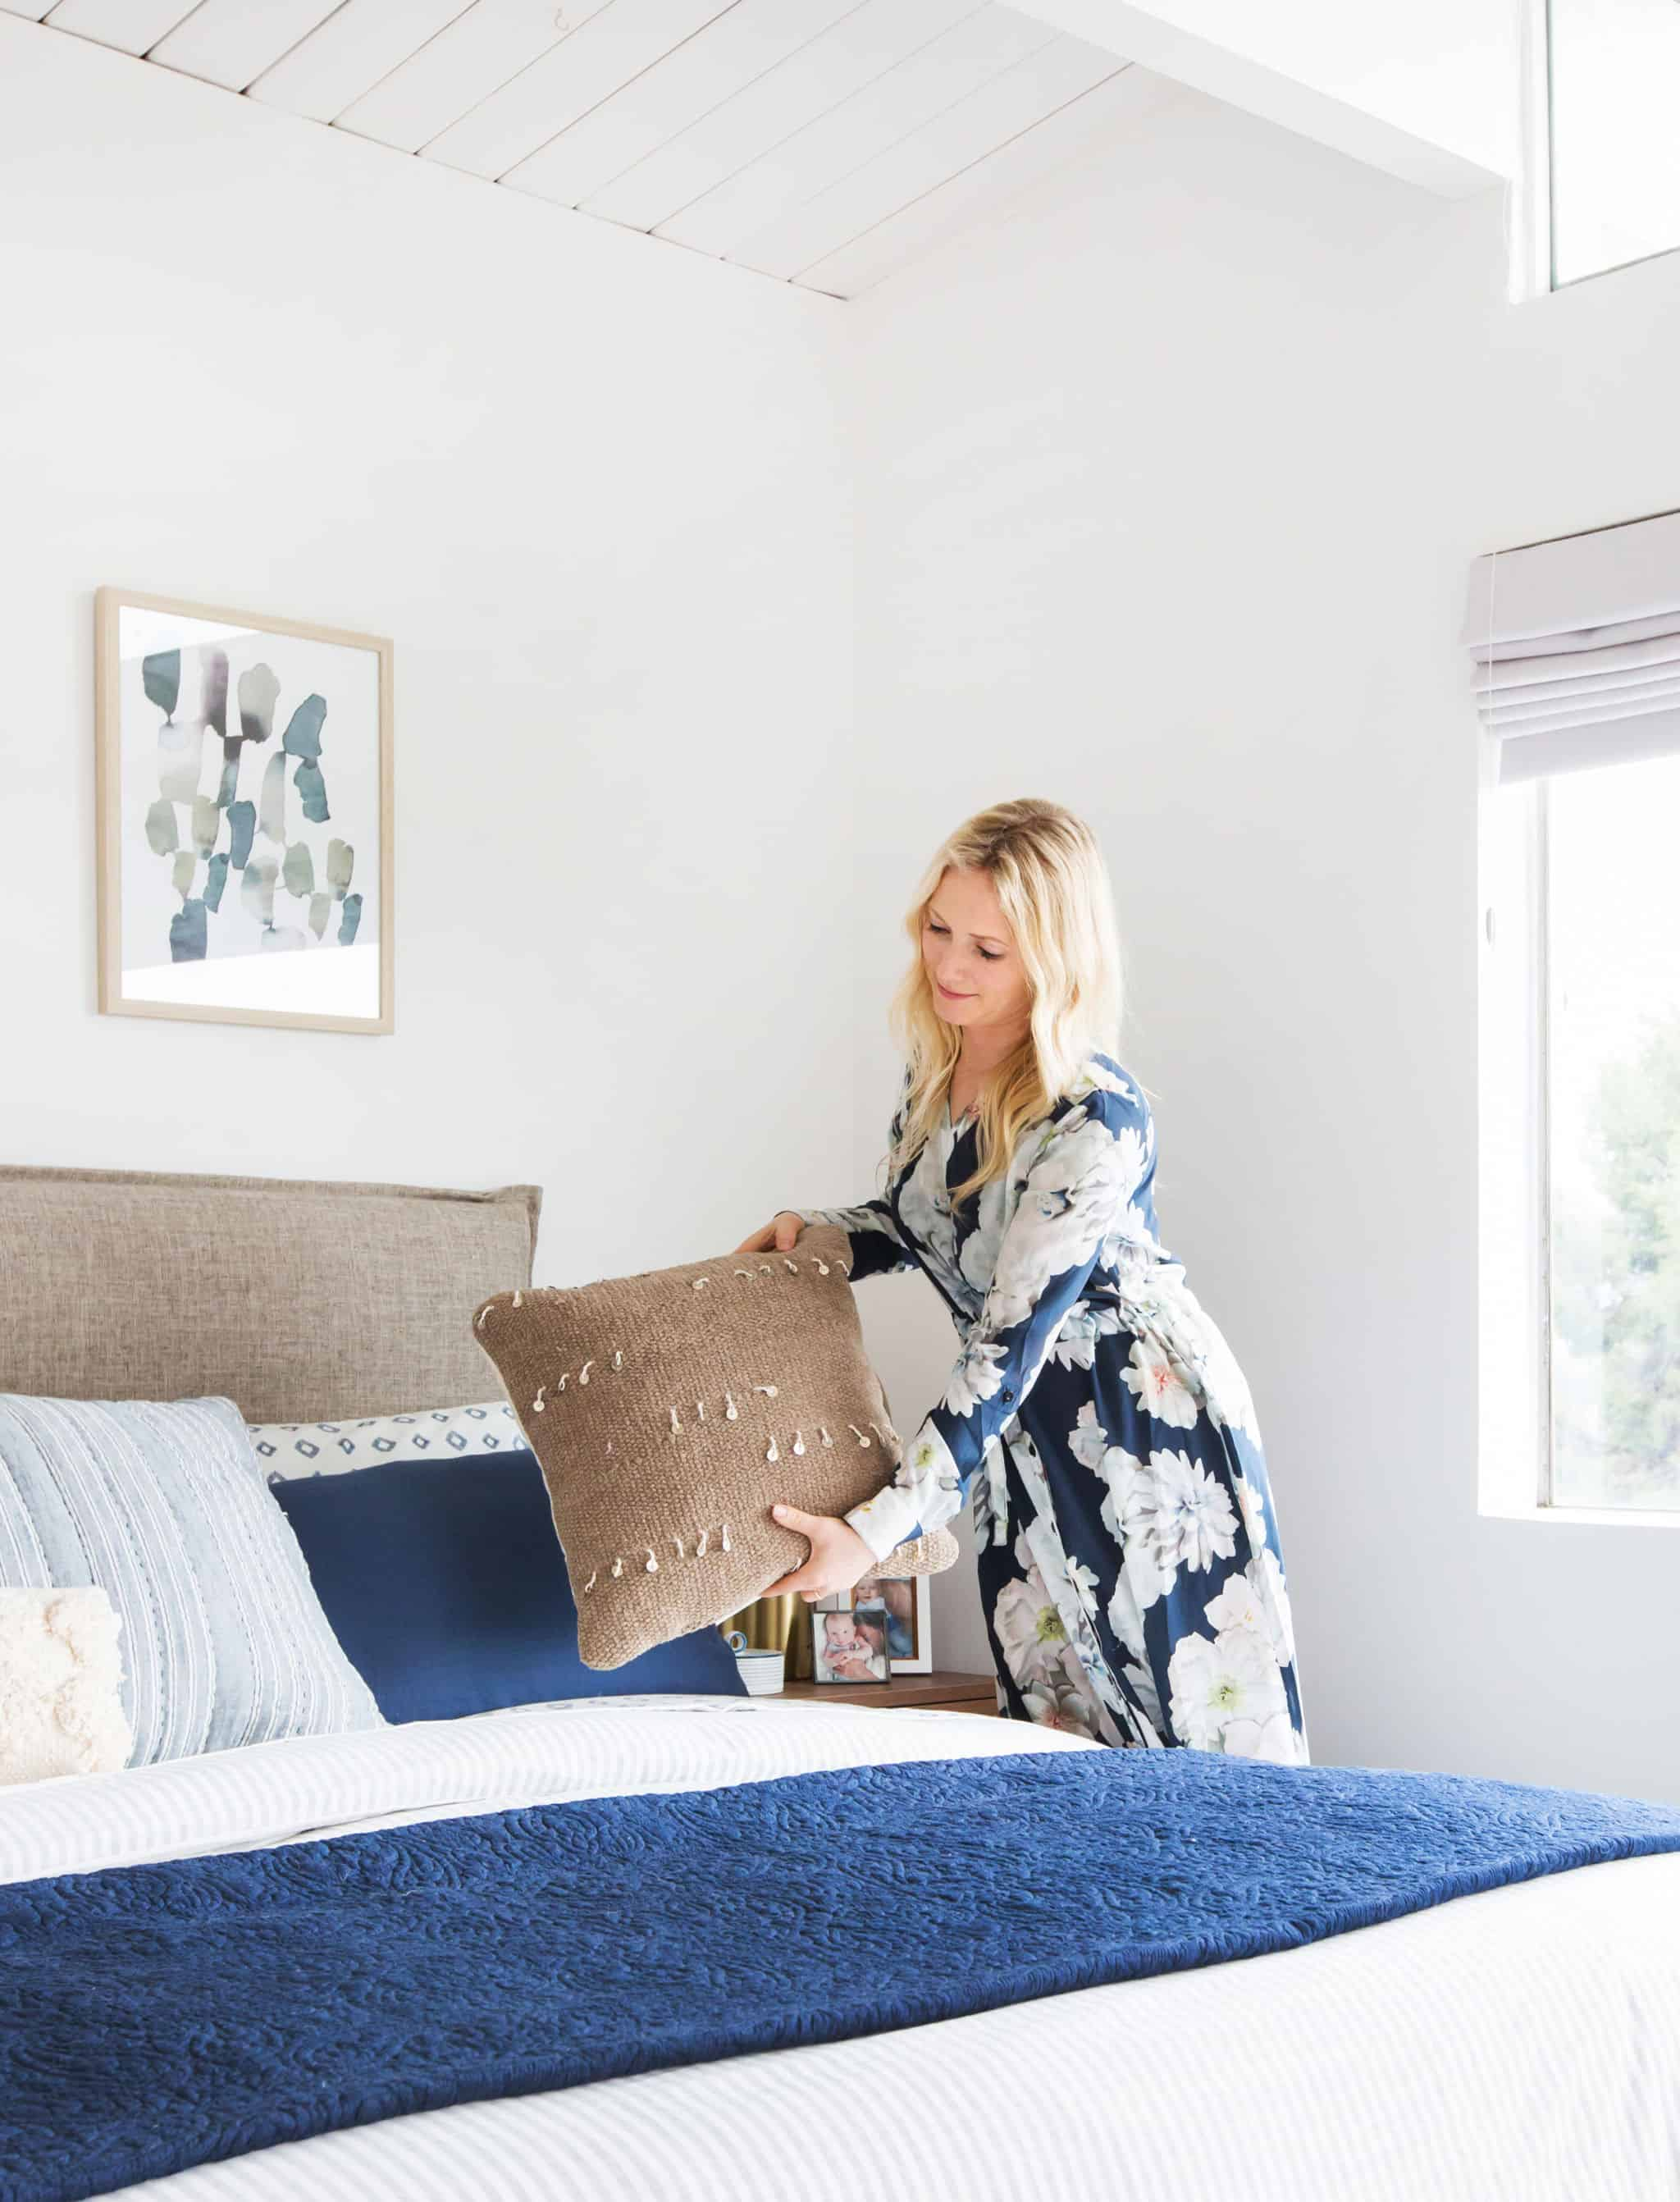 emily-henderson_master-bedroom_target_bedding_layered_light_texture_blue_white_brass_masculine_soft_18